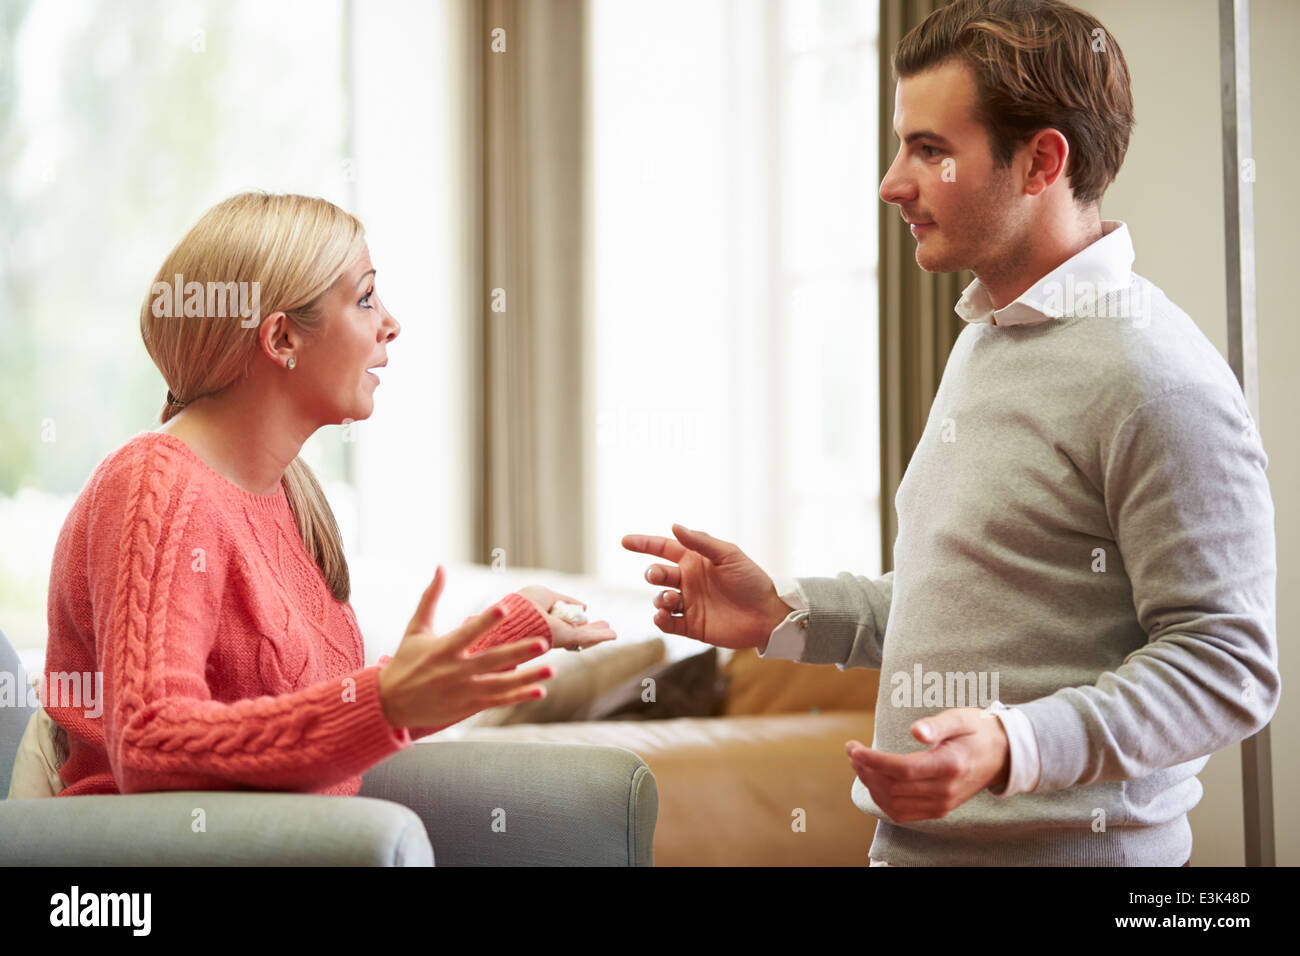 Young Couple Having Argument At Home - Stock Image